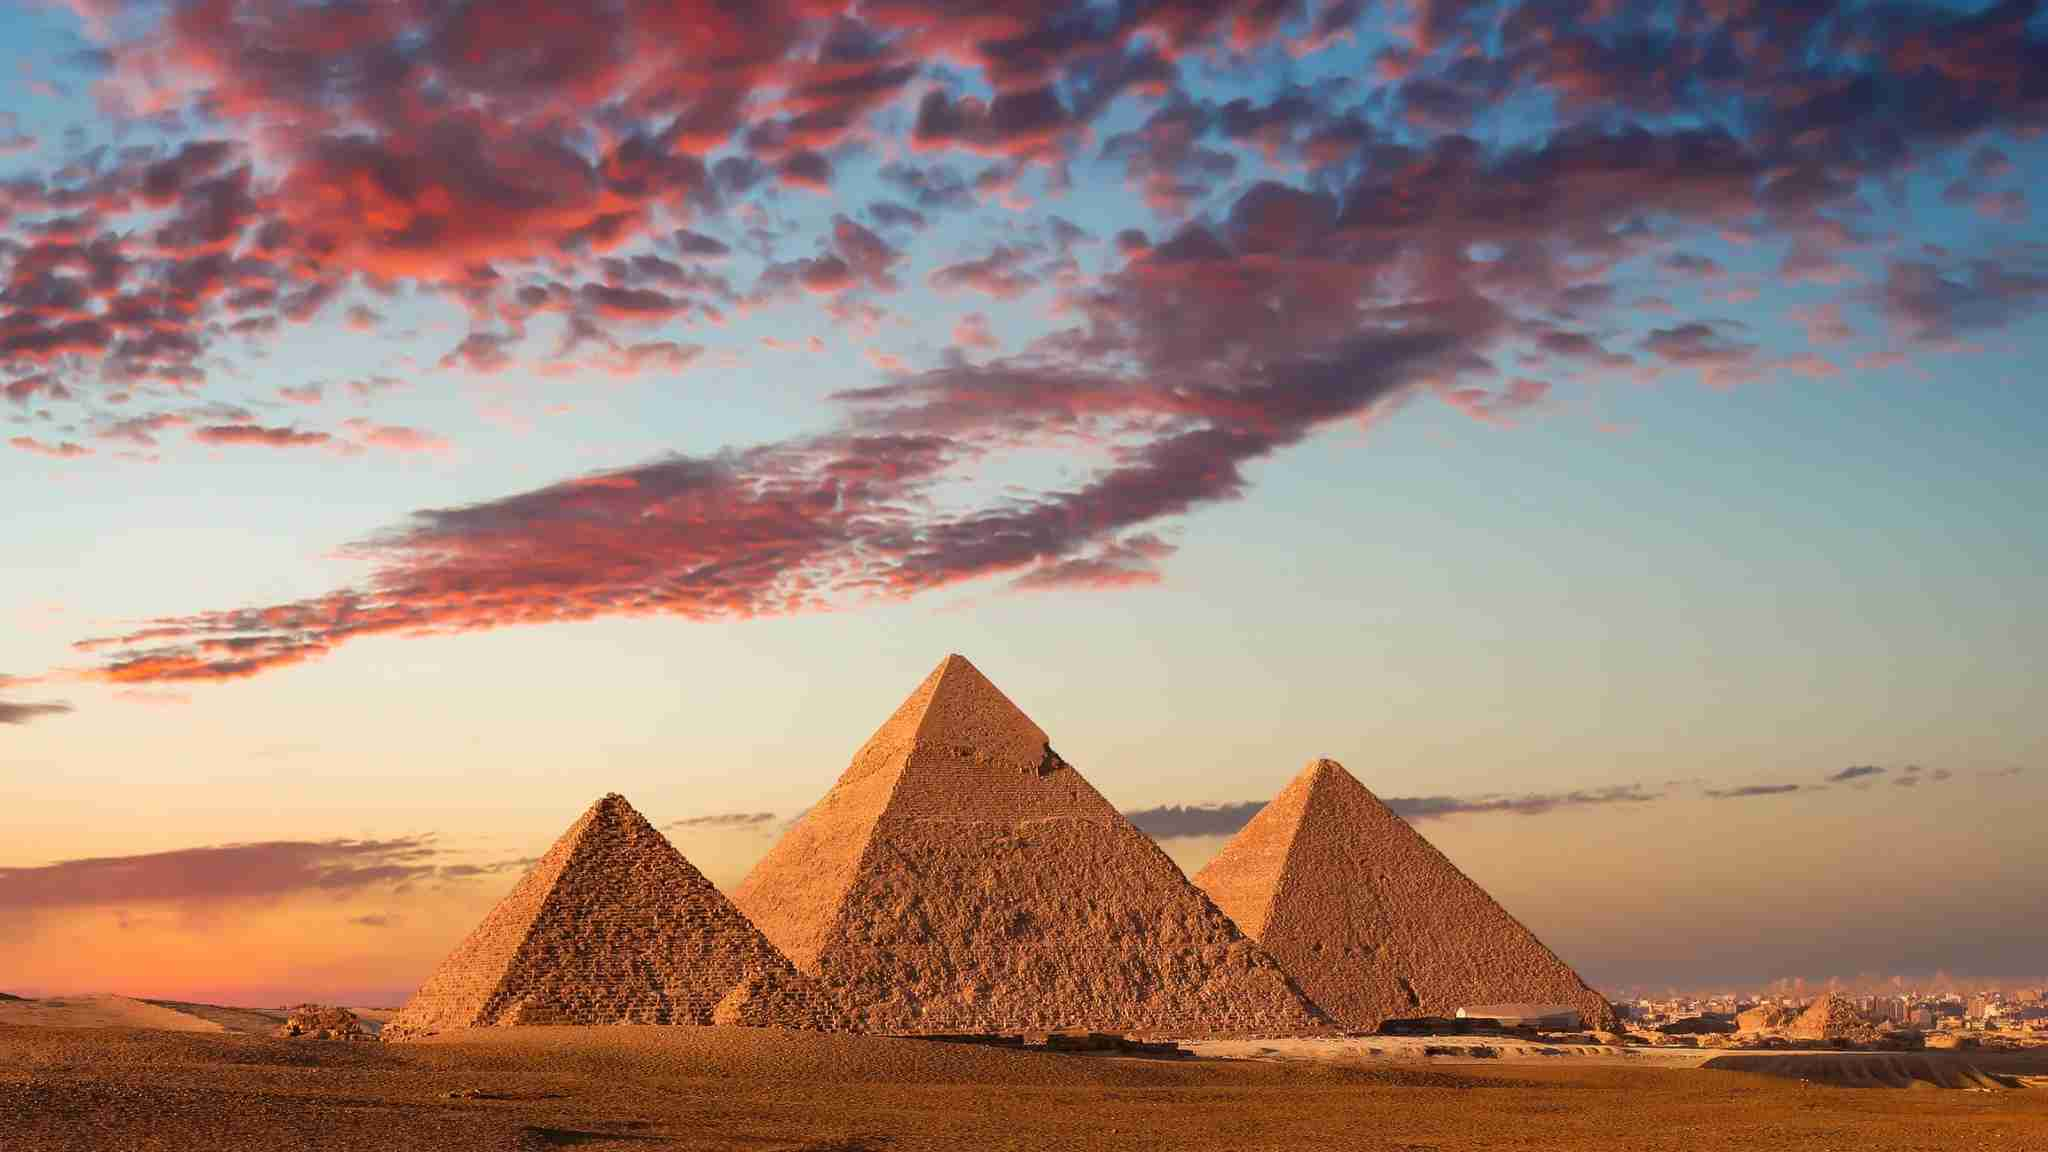 The Great Pyramids at Giza. (Photo via Getty Images)